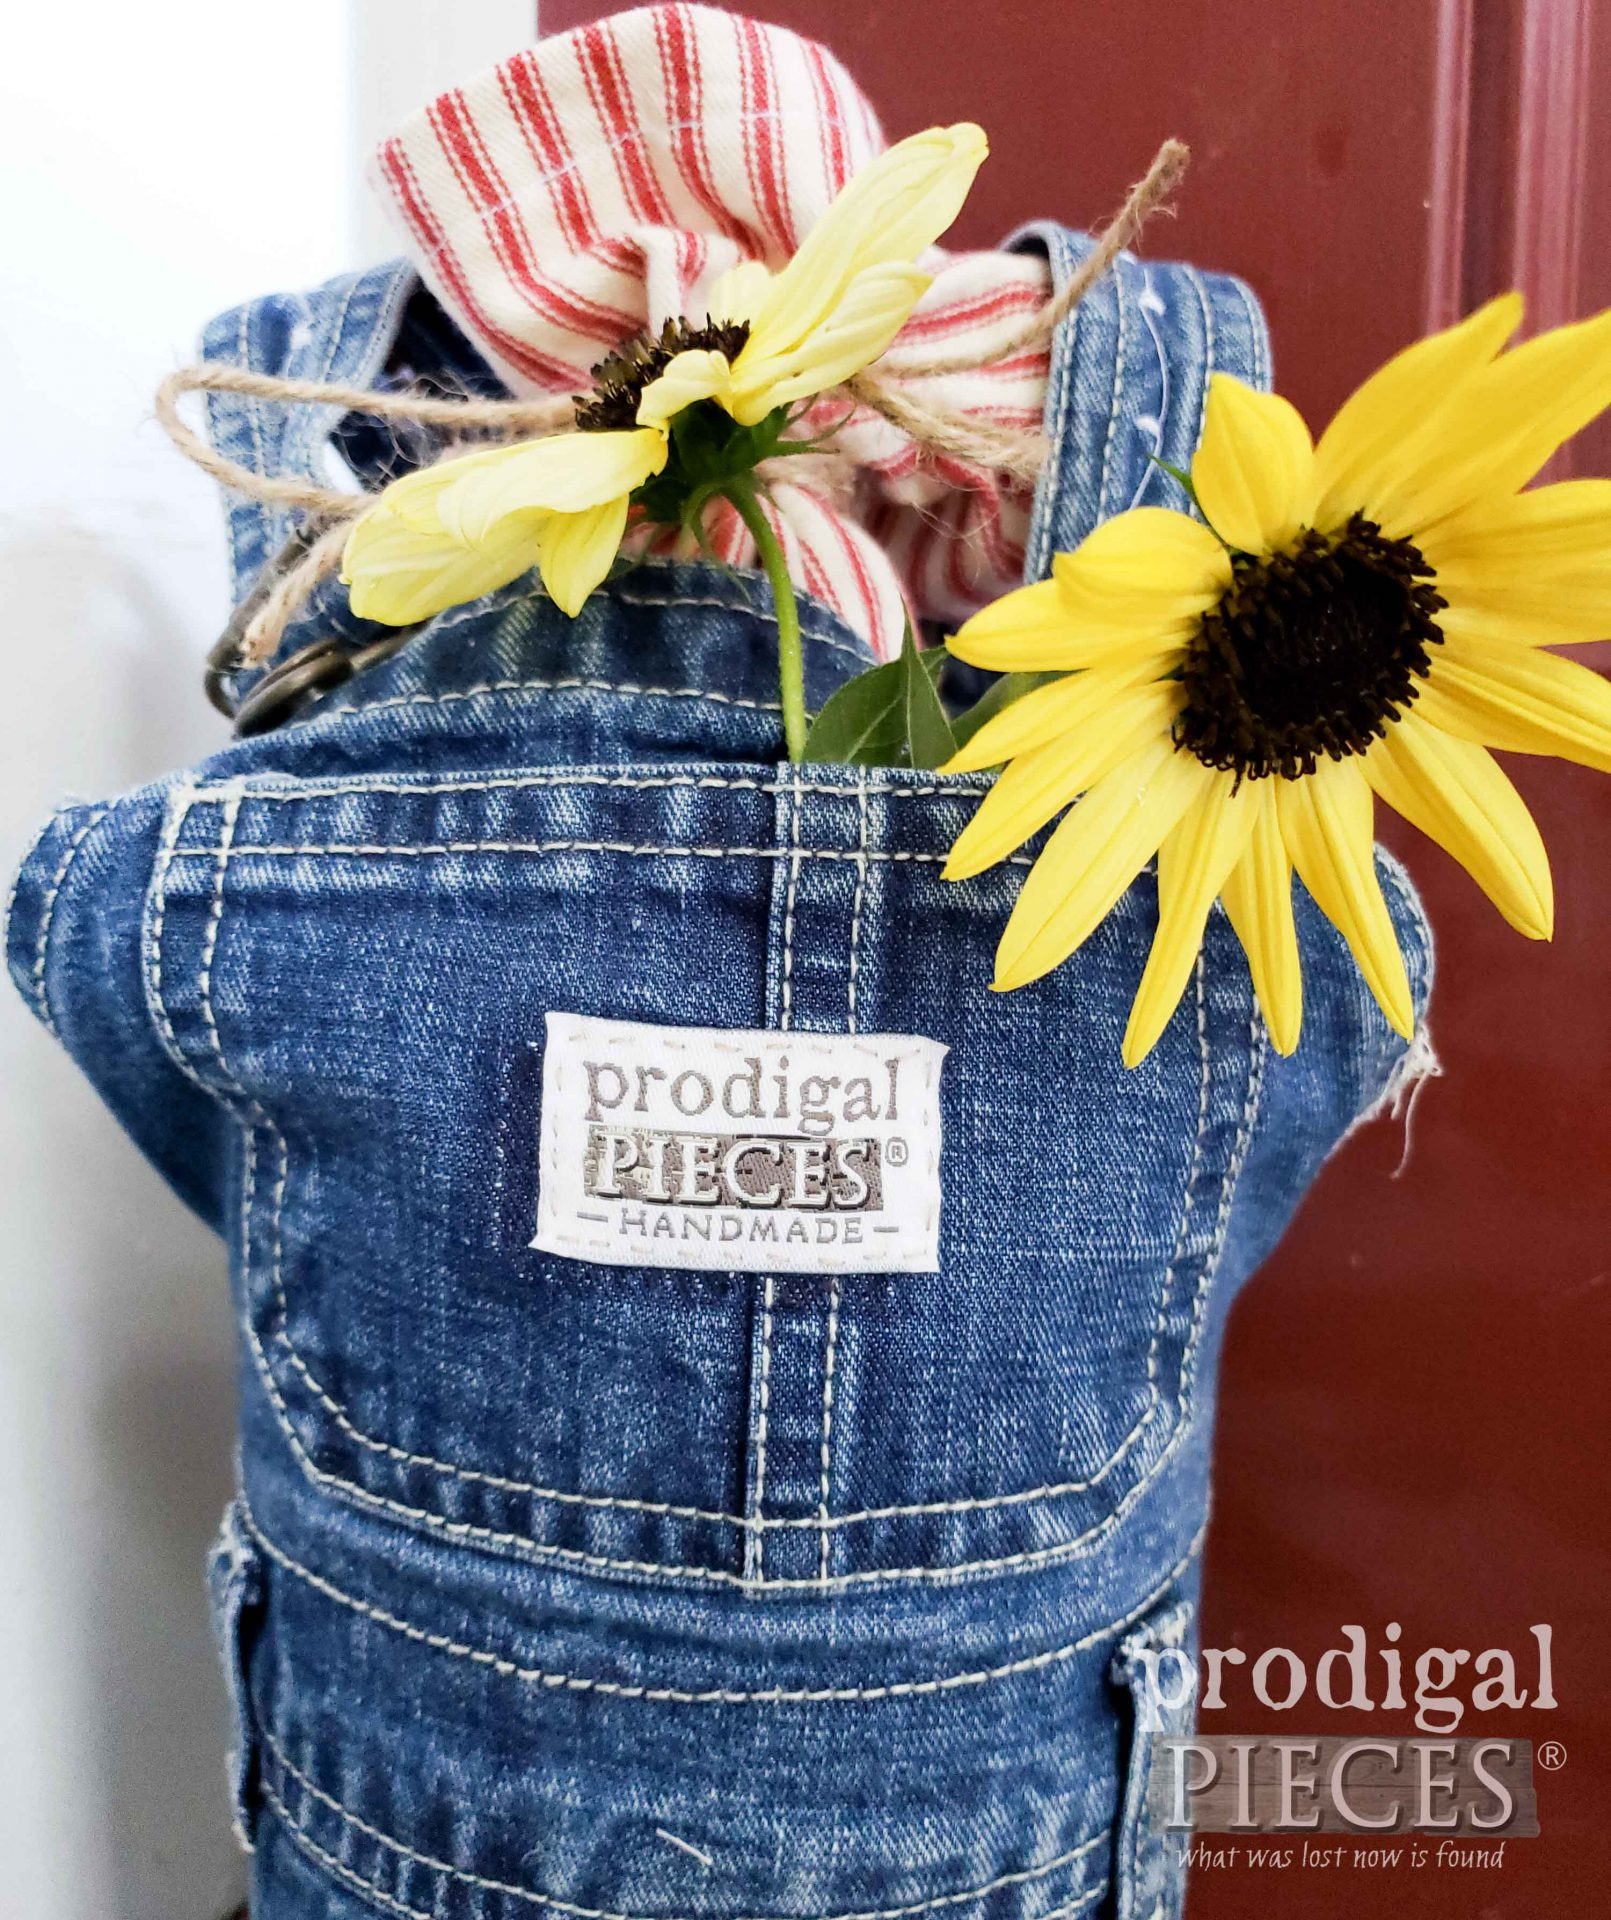 Handmade Doorstop from Upcycled Baby Bib Overalls by Larissa of Prodigal Pieces | prodigalpieces.com #prodigalpieces #diy #home #refashion #kids #homedecor #farmhouse